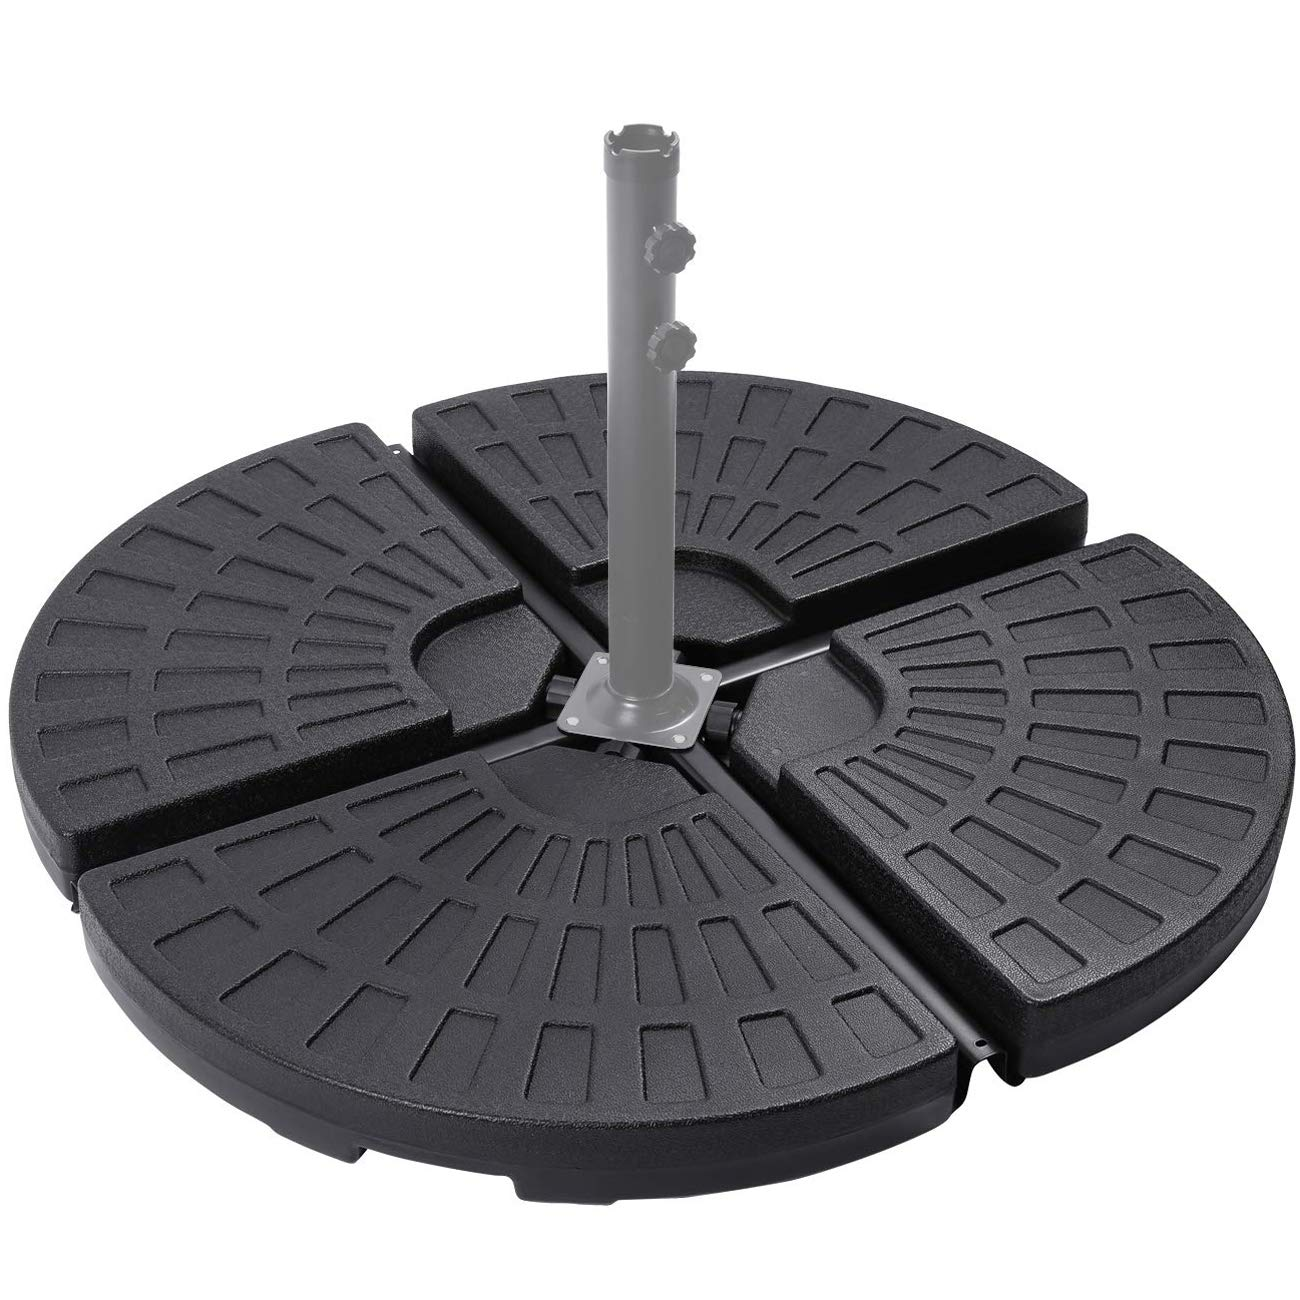 Sunnyglade 18.9'' 4Pcs 13L Fan Shaped Water or Sand Filled Umbrella Base/Fan Style Self-Filled Cantilever Offset Umbrella Base Stand Suitable for All Kinds of Cross Tiles (Black)